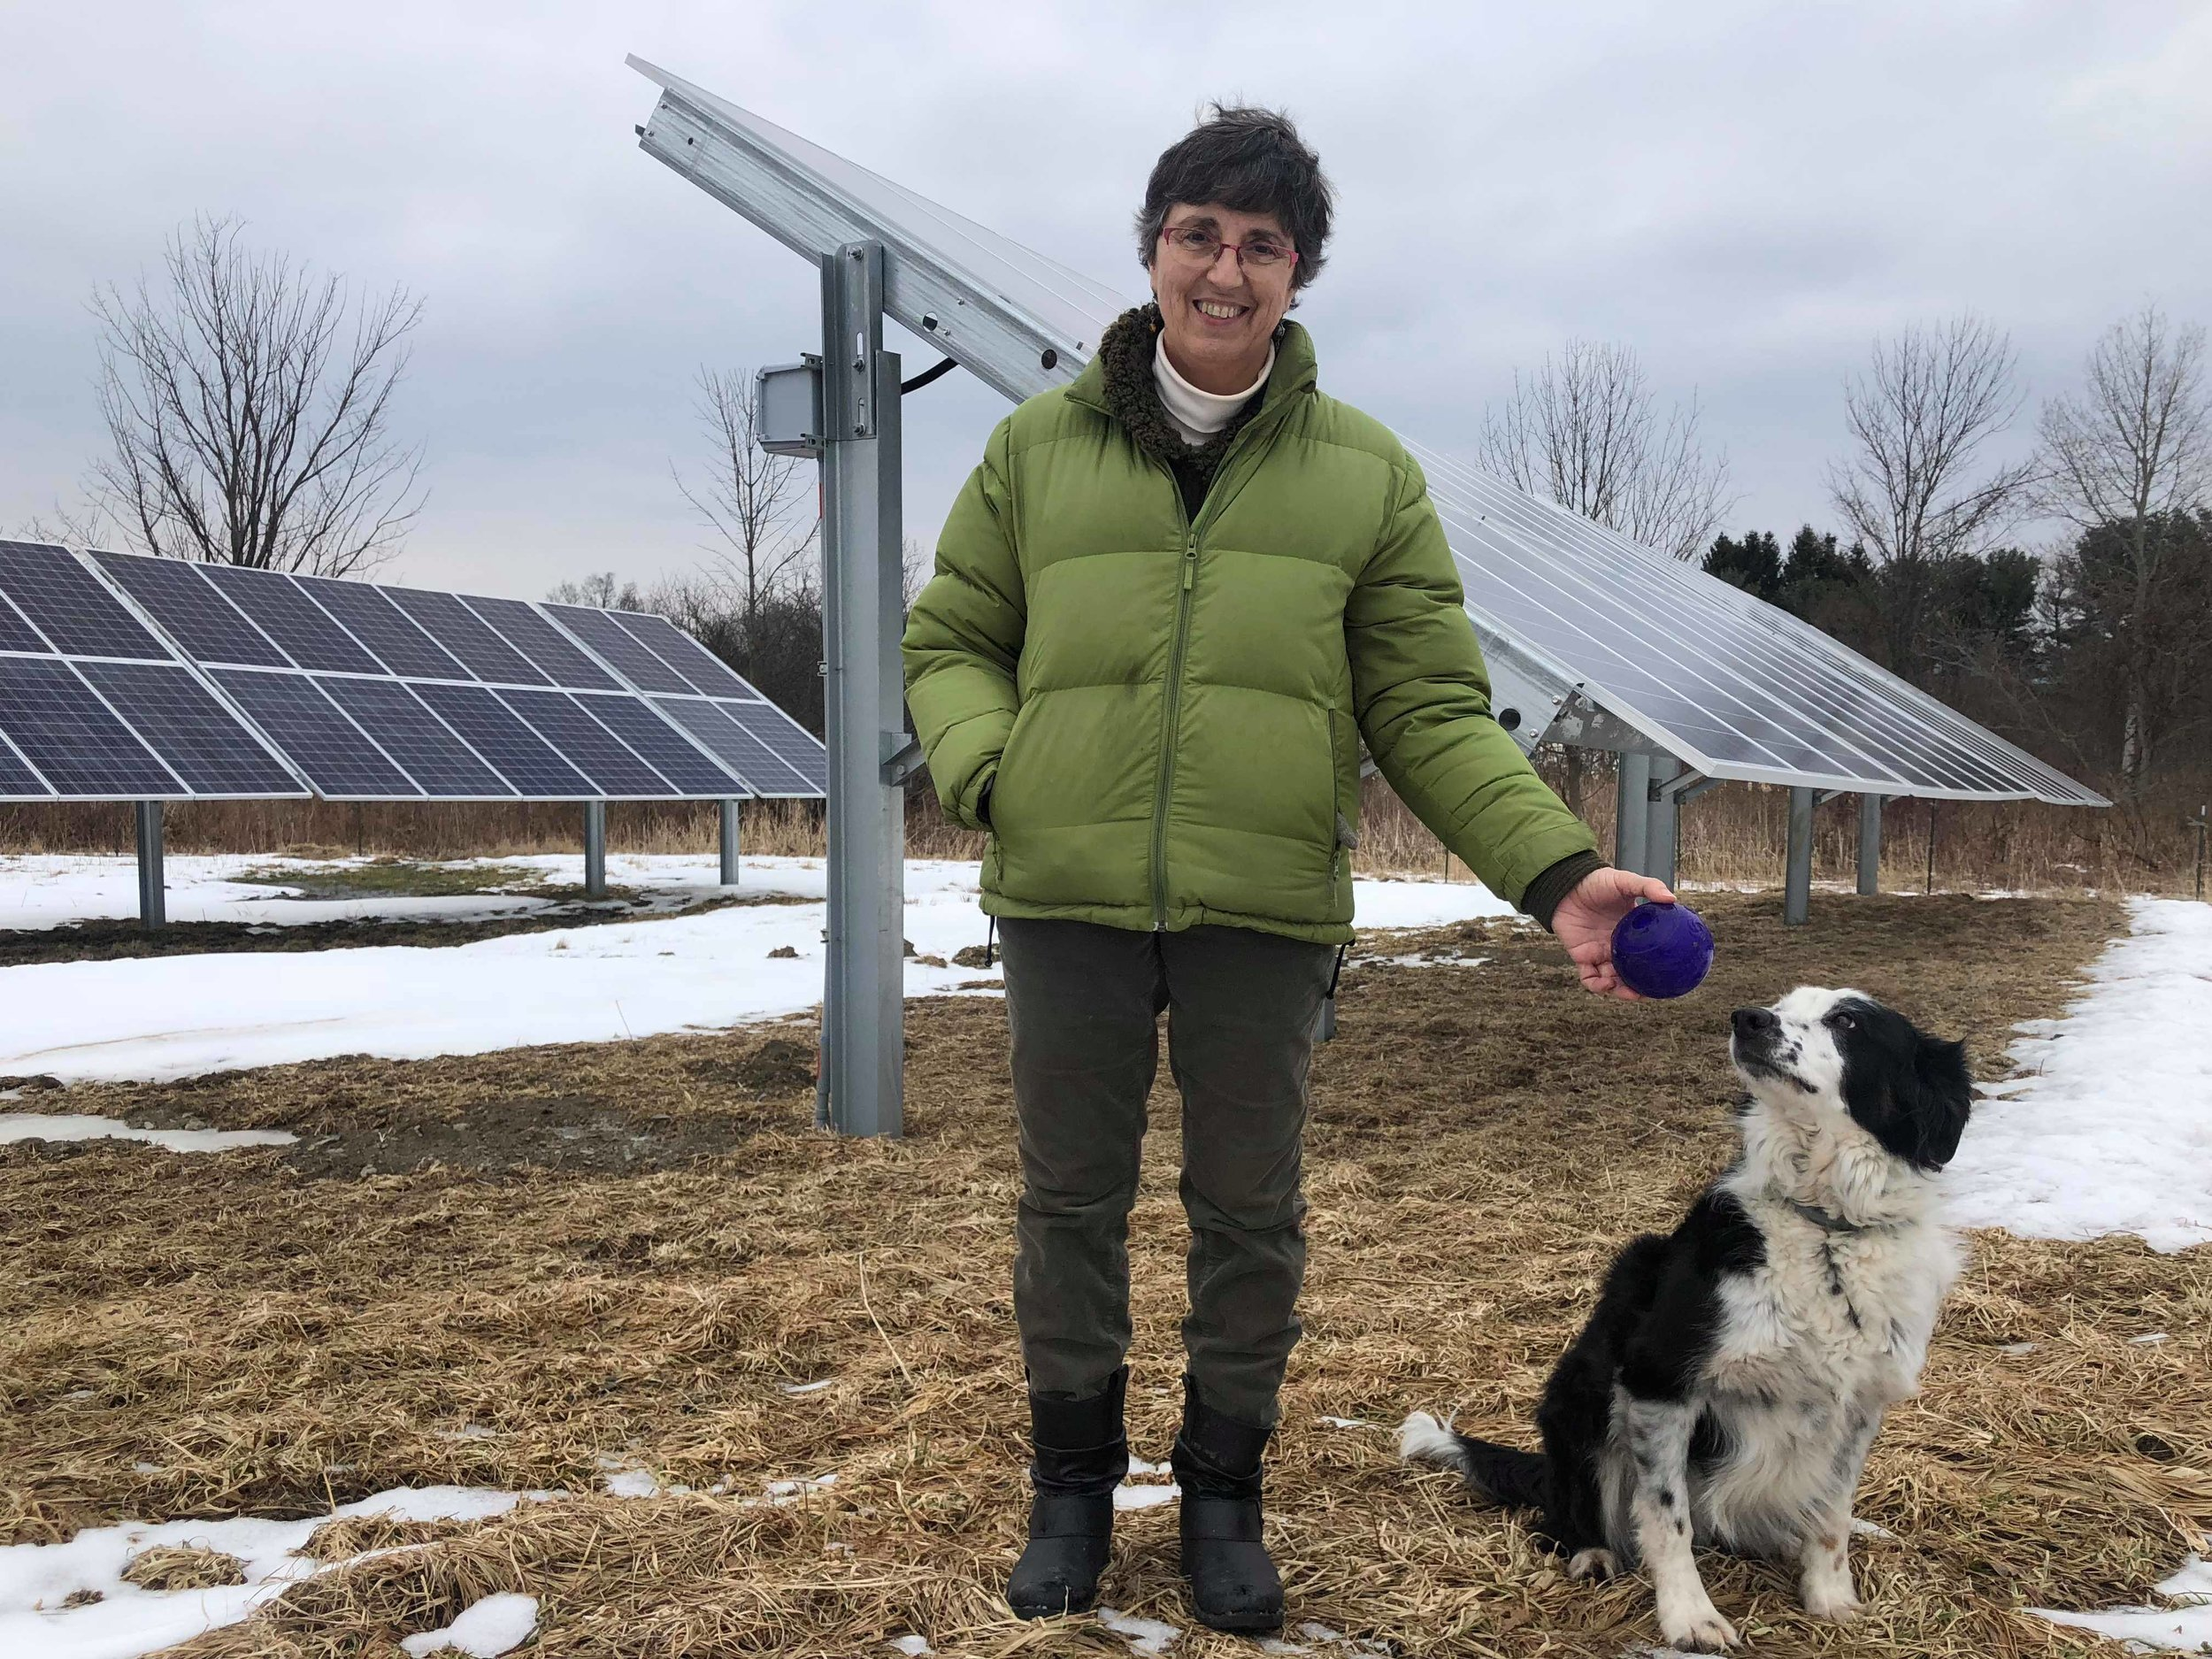 Lisa Ferguson, owner of Laughing Goat Fiber Farm, poses in front of her solar panels with her dog, Calvin. Lisa had solar panels installed and is now saving money and energy while limiting her environmental impact. Photo: Maggie McAden